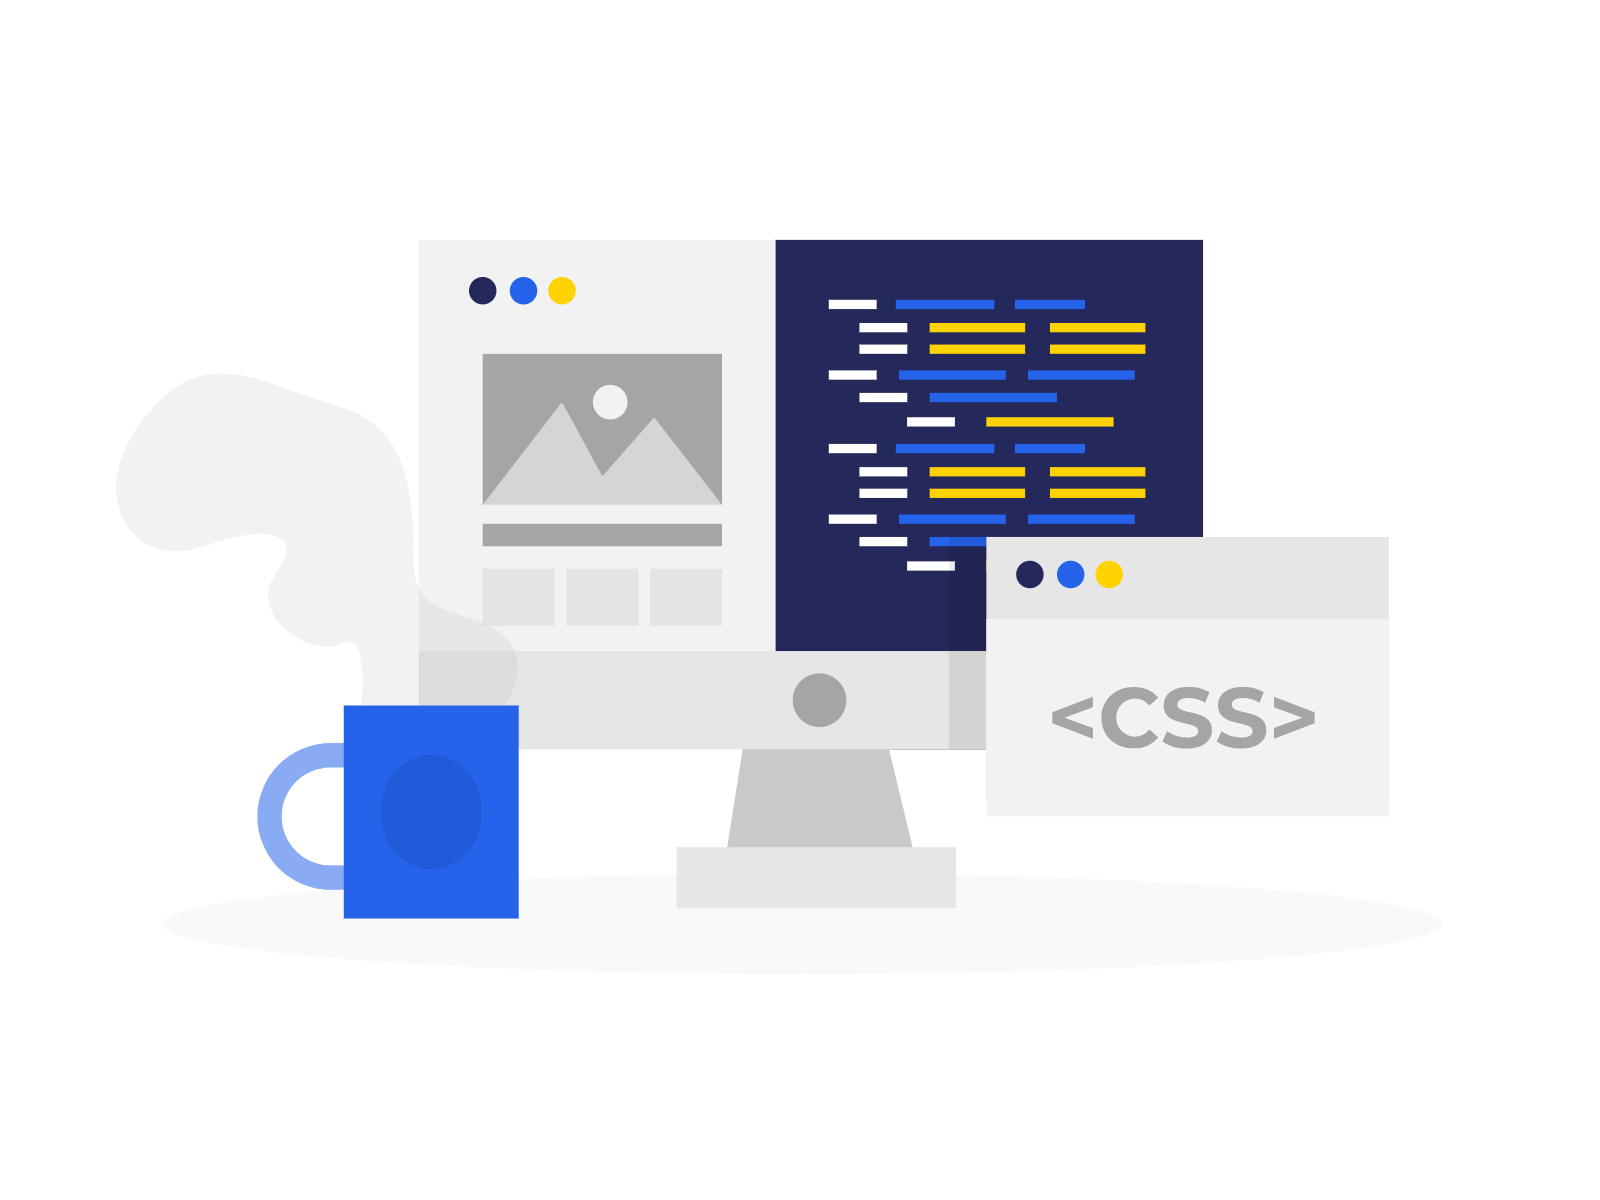 Illustration with a cup of coffee in the foreground and computer with webpage content and webpage code in the background